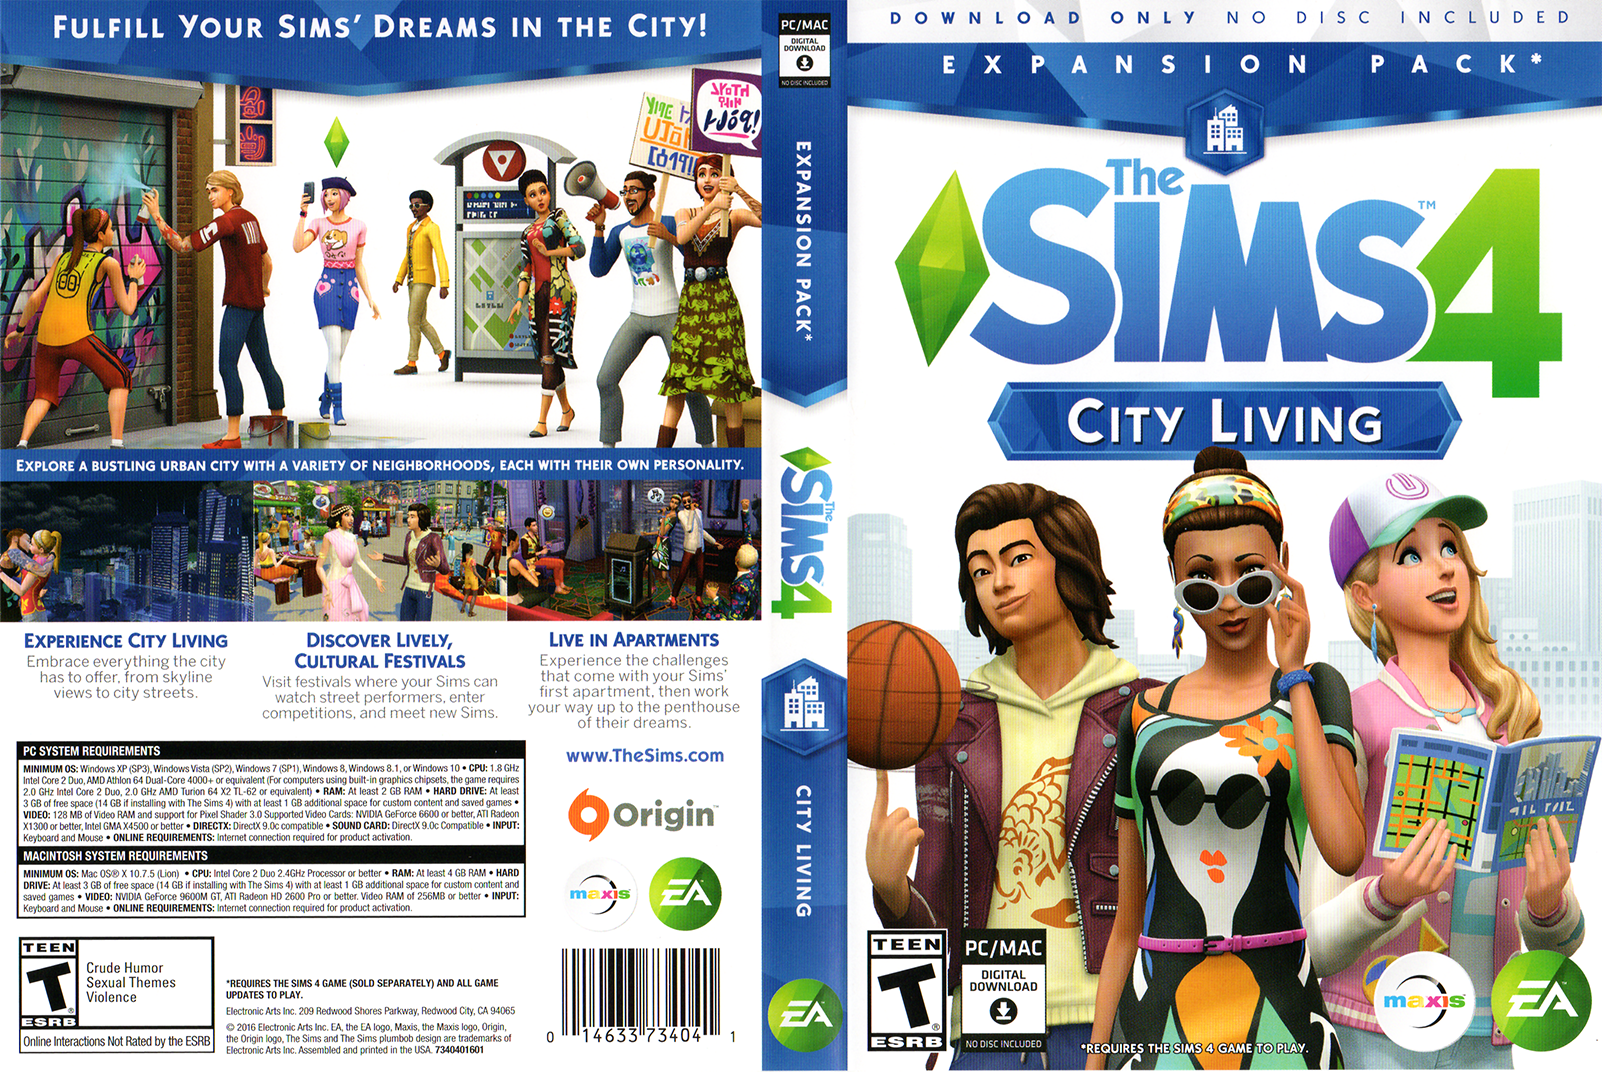 Unleash your imagination and create a world of Sims that's wholly unique. ... get  The Sims 4 Digital Deluxe, Dine Out Game Pack and Kids Room Stuff Pack to ...  Explore Vibrant Worlds – Your Sims can visit new communities to expand .... EA  MAY PROVIDE CERTAIN FREE INCREMENTAL CONTENT AND/OR UPDATES.